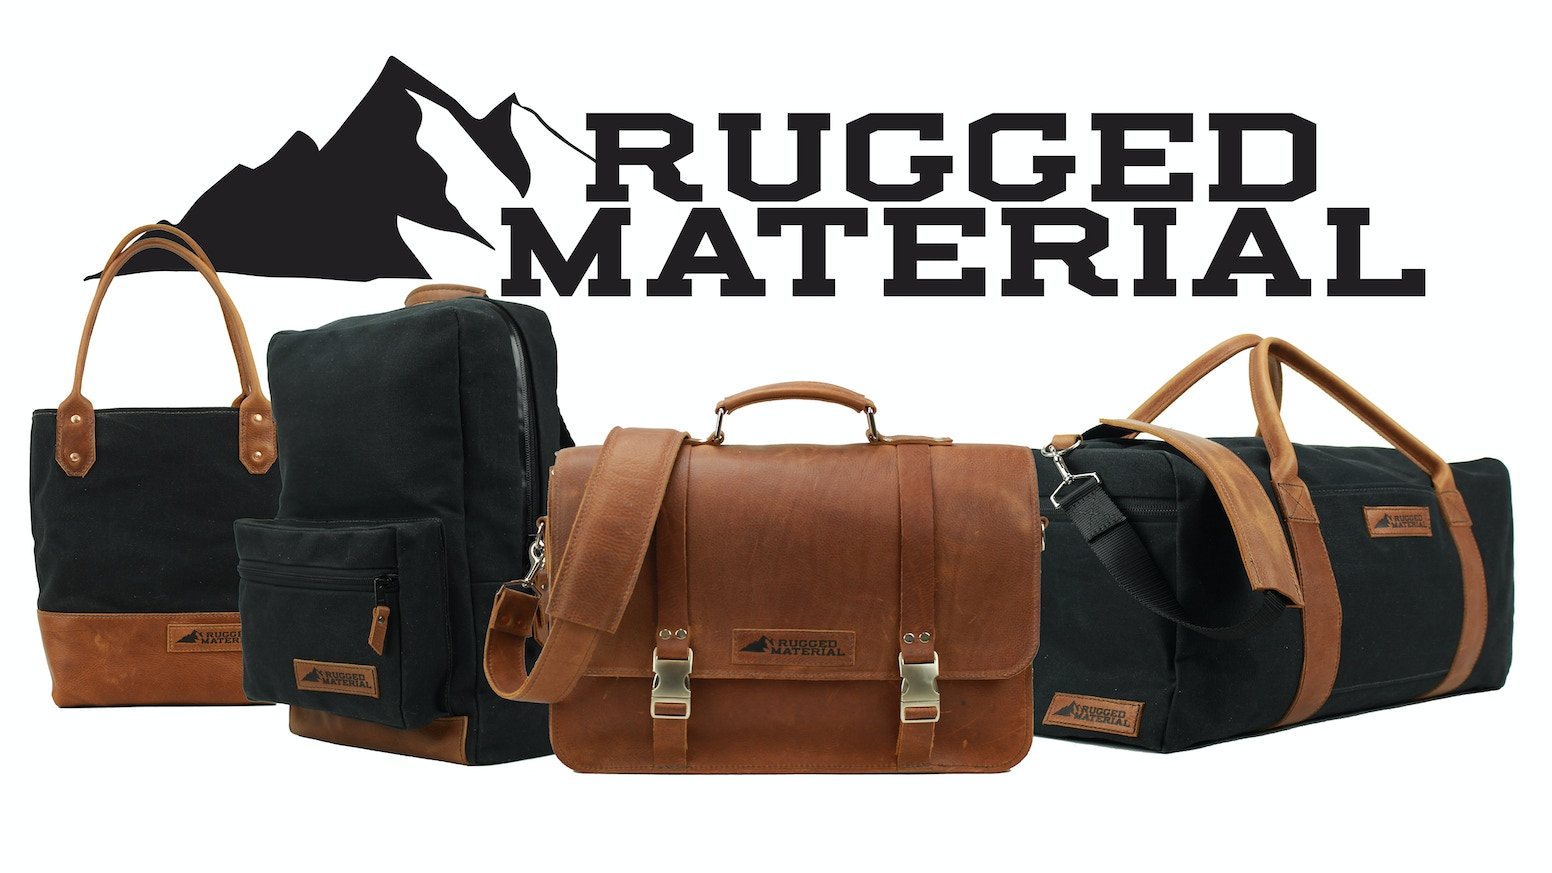 Premium Leather Goods for Everyone. Made in U.S.A. Guaranteed for Life. Delivered at wholesale.